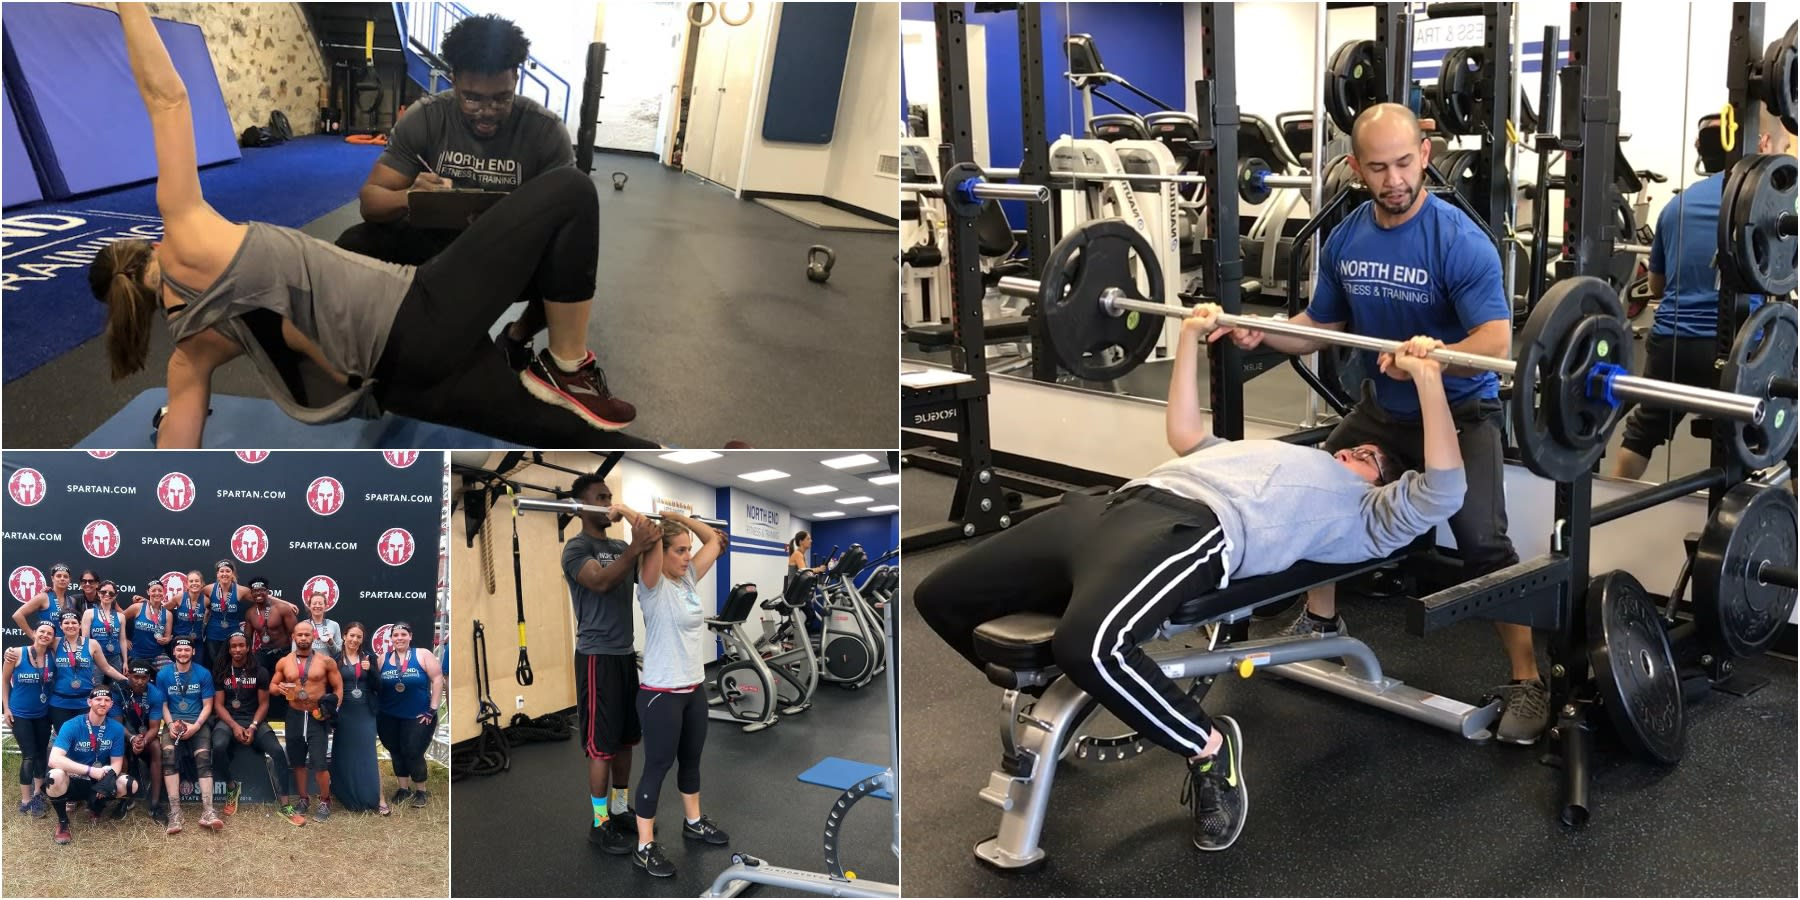 New Rochelle's Premier Fitness Facility